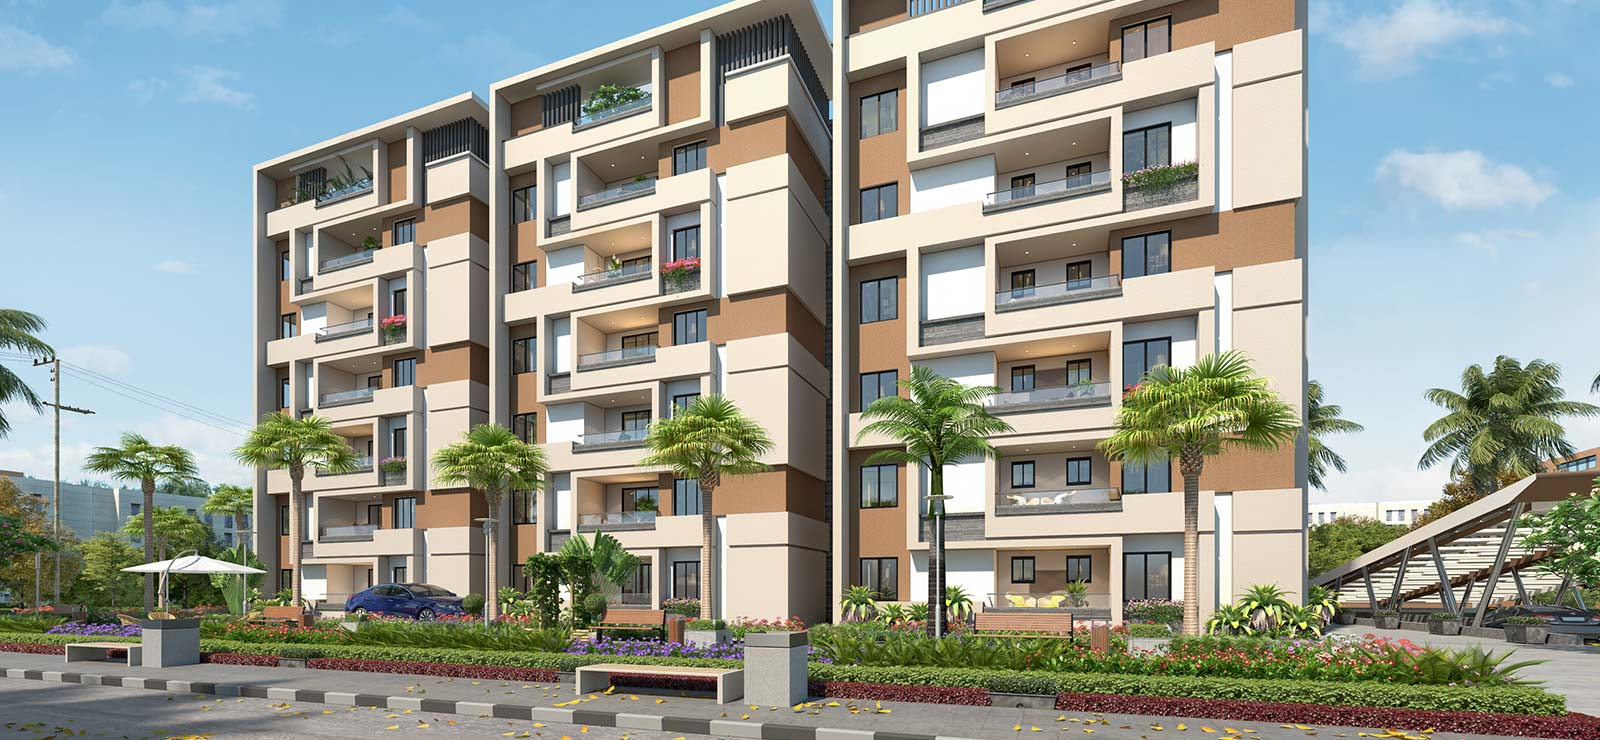 Apartments by GK Construction